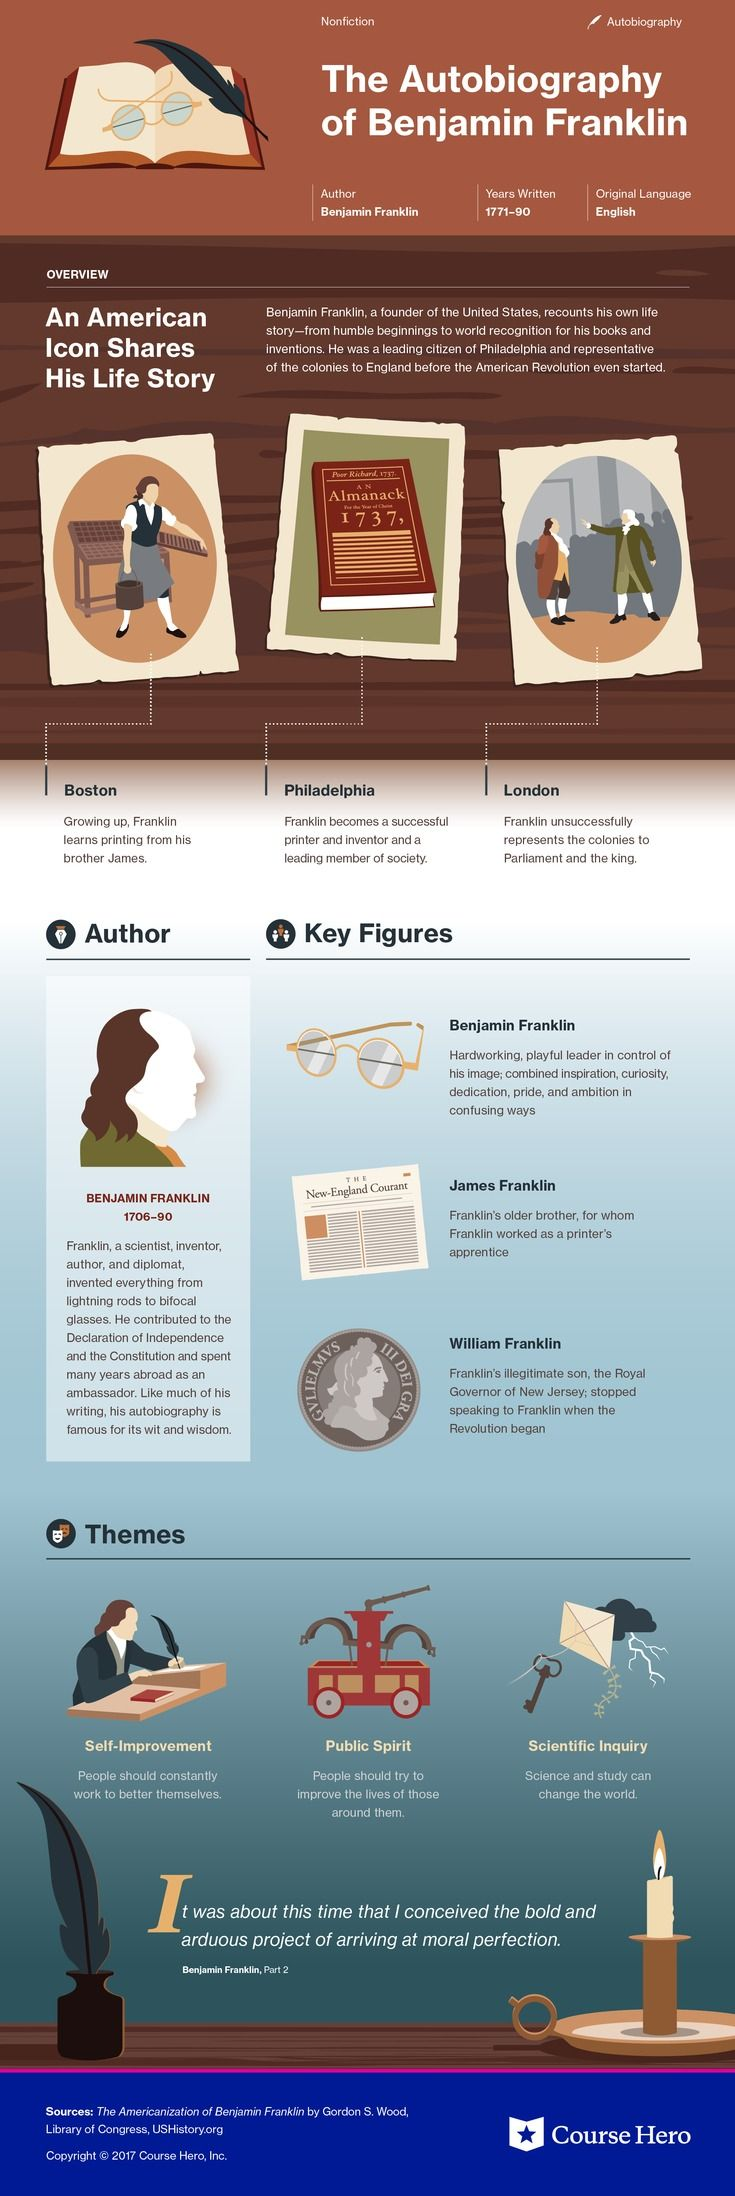 This @CourseHero infographic on The Autobiography of Benjamin Franklin is both visually stunning and informative!